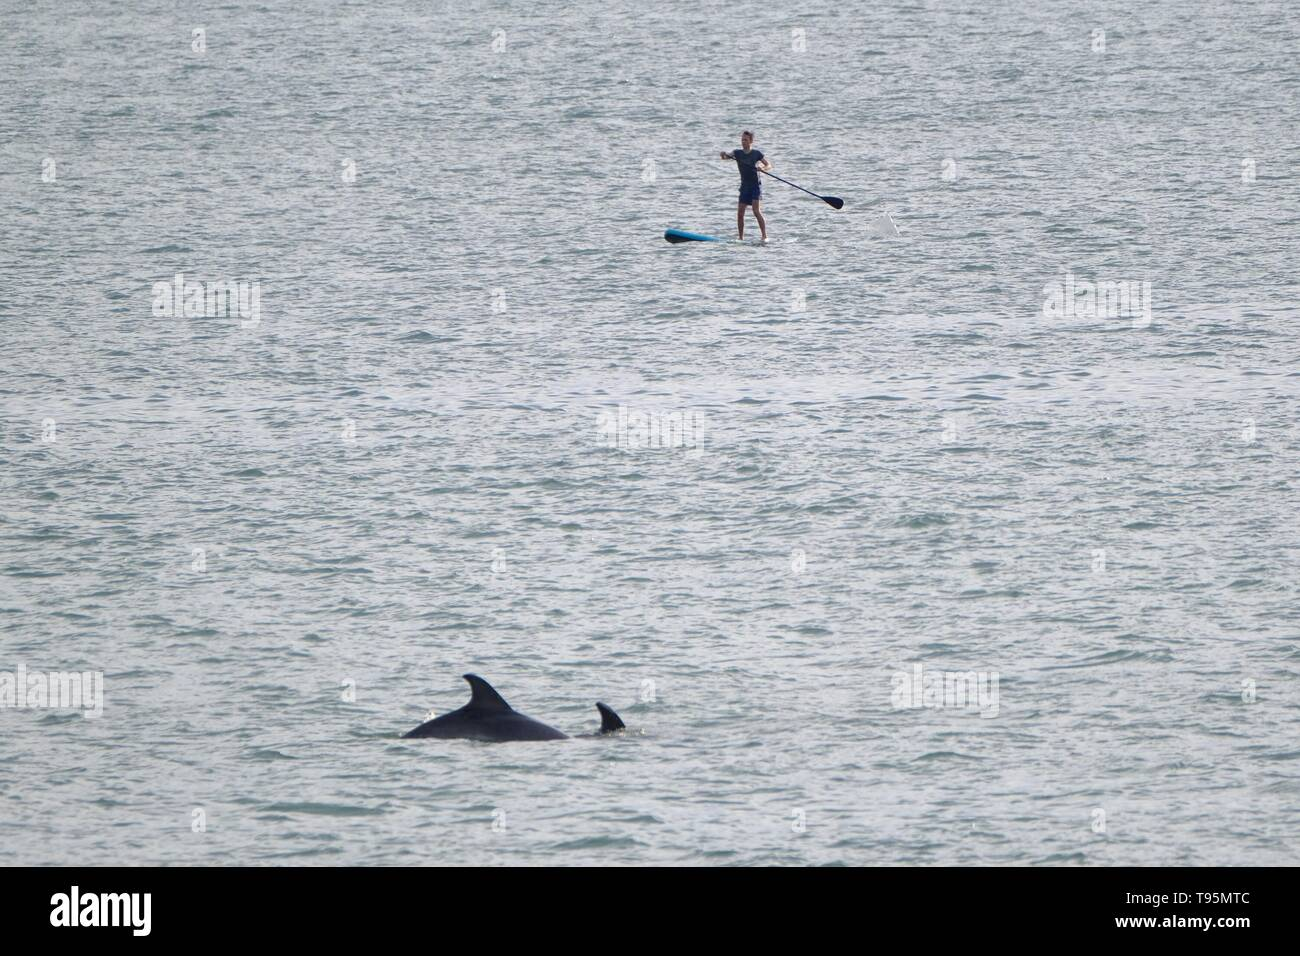 Aberystwyth Wales Uk. Thursday 16 May 2019 UK weather: A lone paddle boarder gets a close encounter with a pair of dolphins in the sea off Aberystwyth beach on a warm May evening. photo Credit: Keith Morris/Alamy Live News - Stock Image